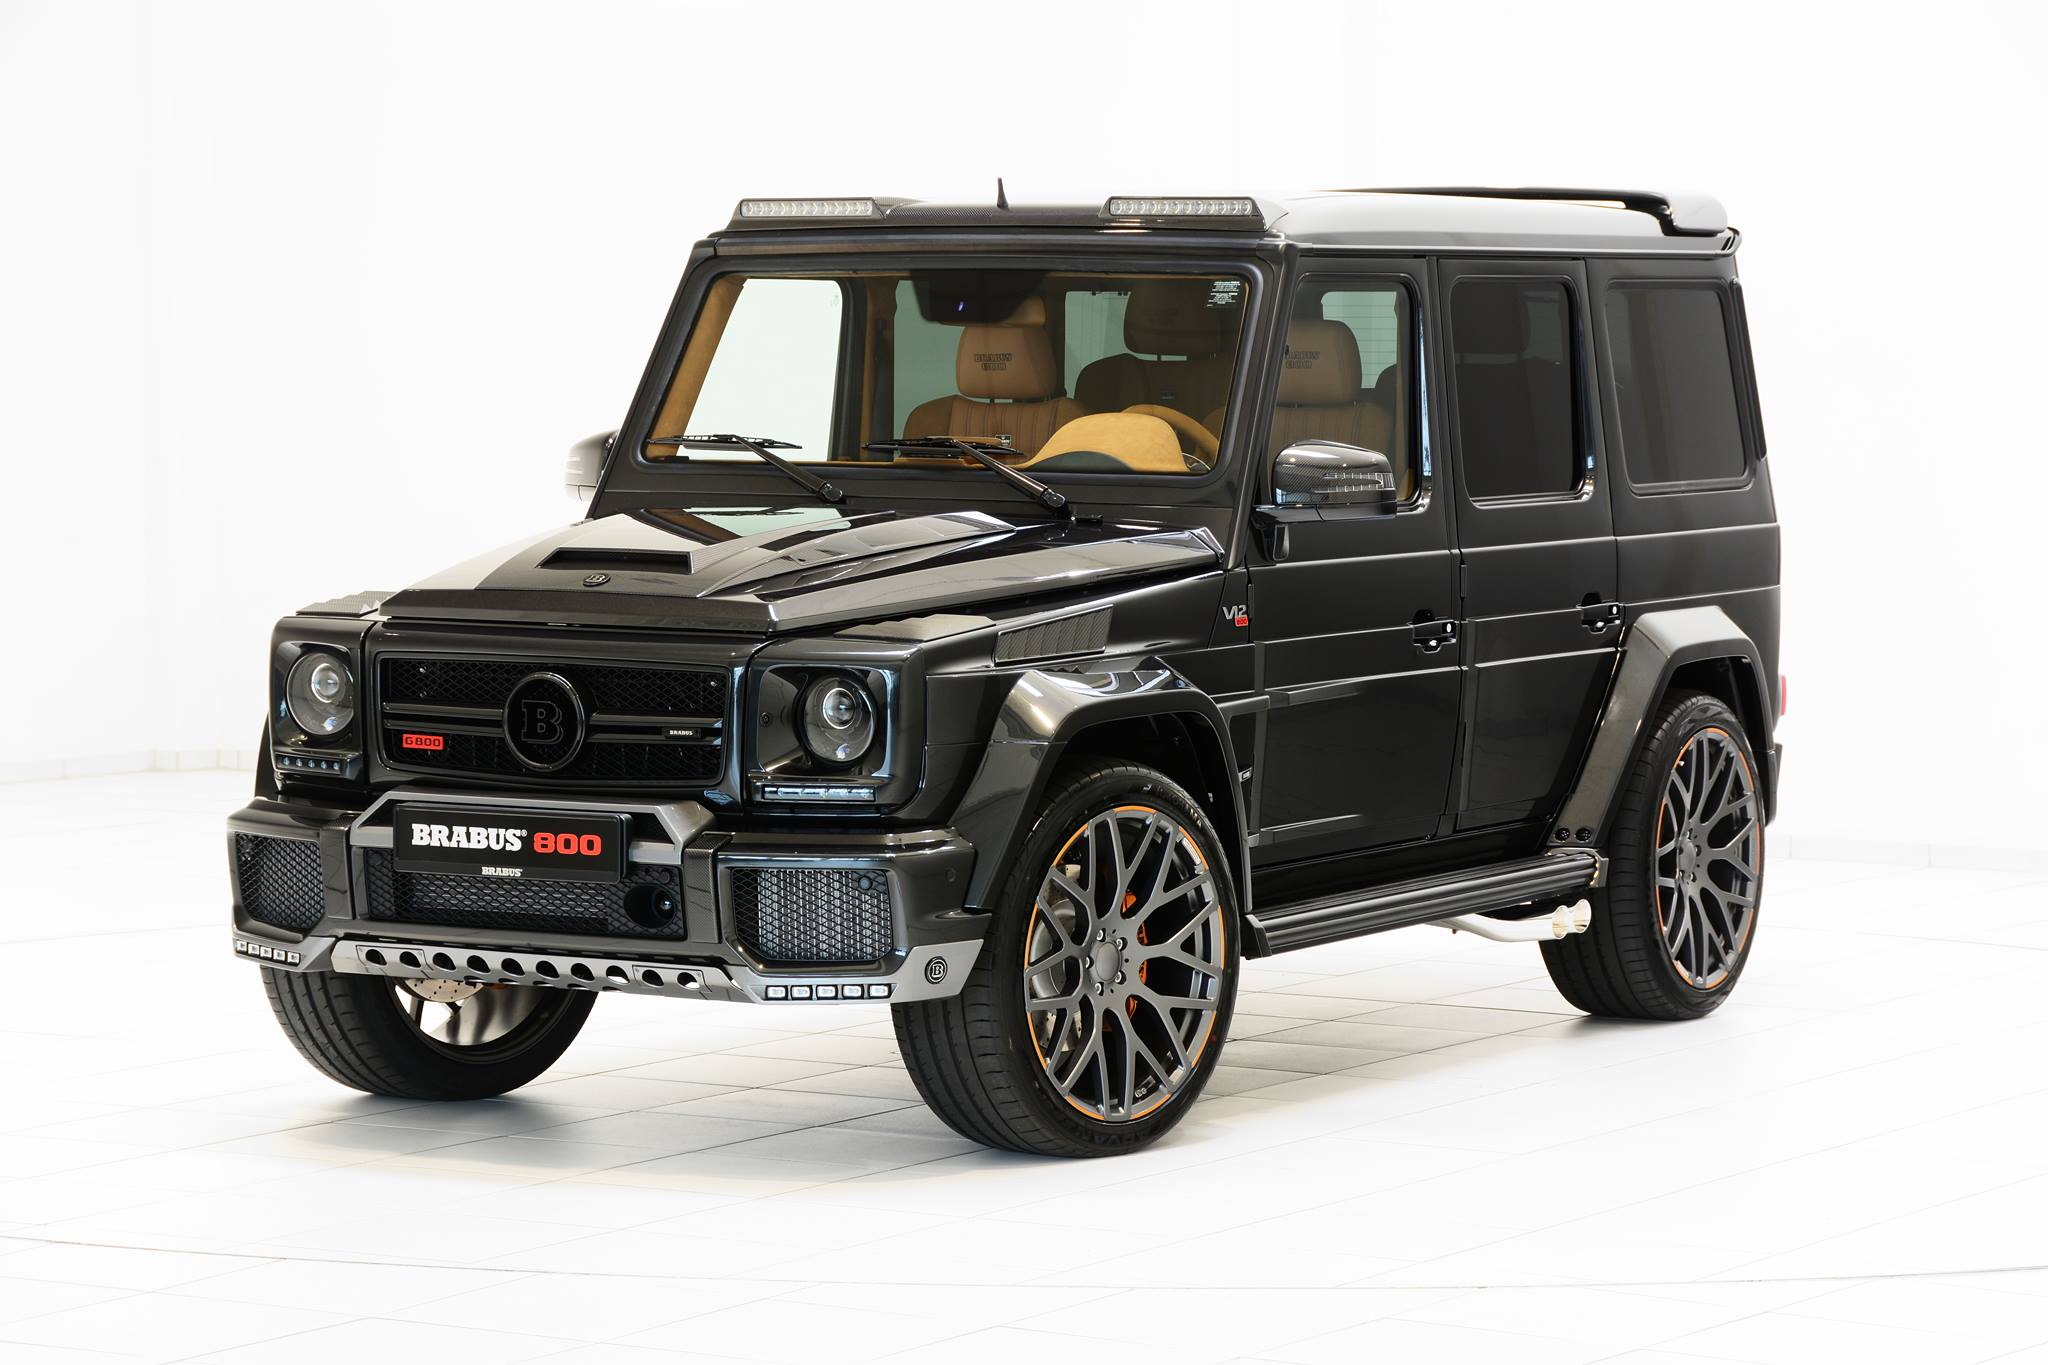 brabus 800 is a mercedes amg g65 with more oomph automobile magazine. Black Bedroom Furniture Sets. Home Design Ideas